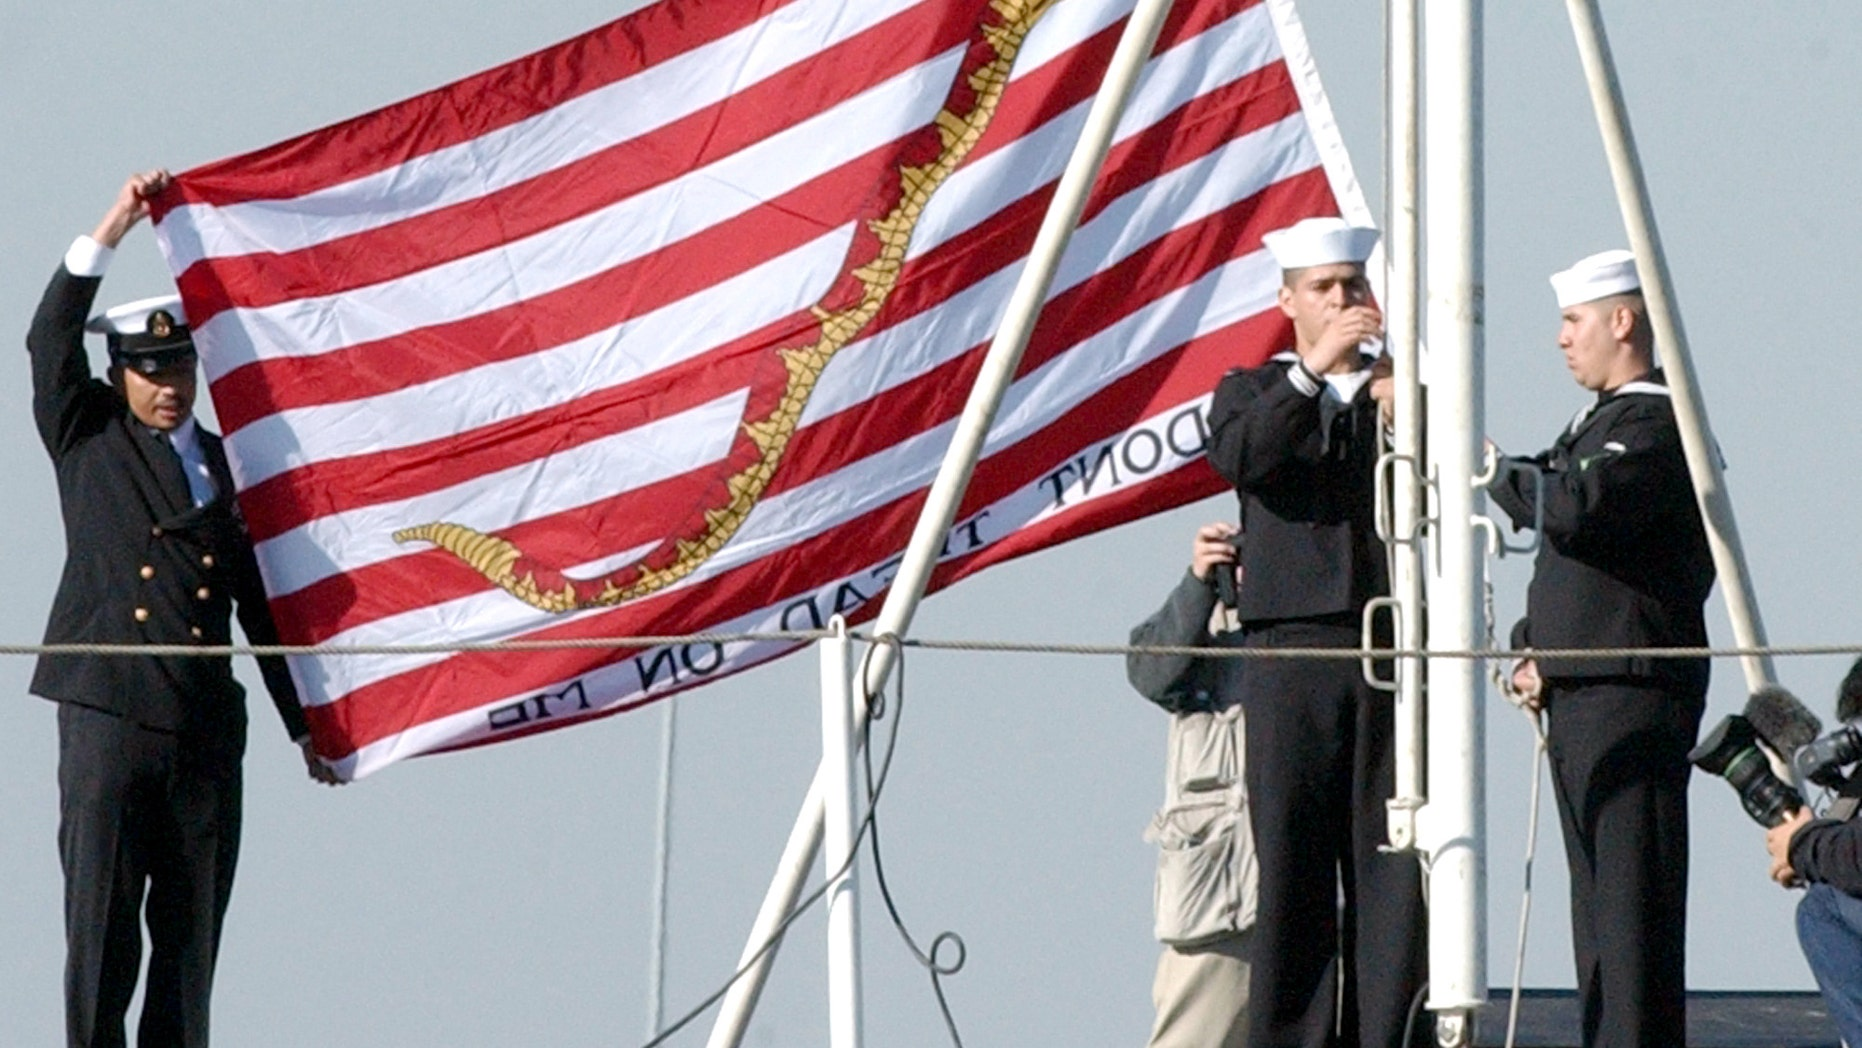 Official U.S. Navy file photo shows Sailors aboard the aircraft carrier USS Kitty Hawk (CV 63) raising the First Navy Jack.